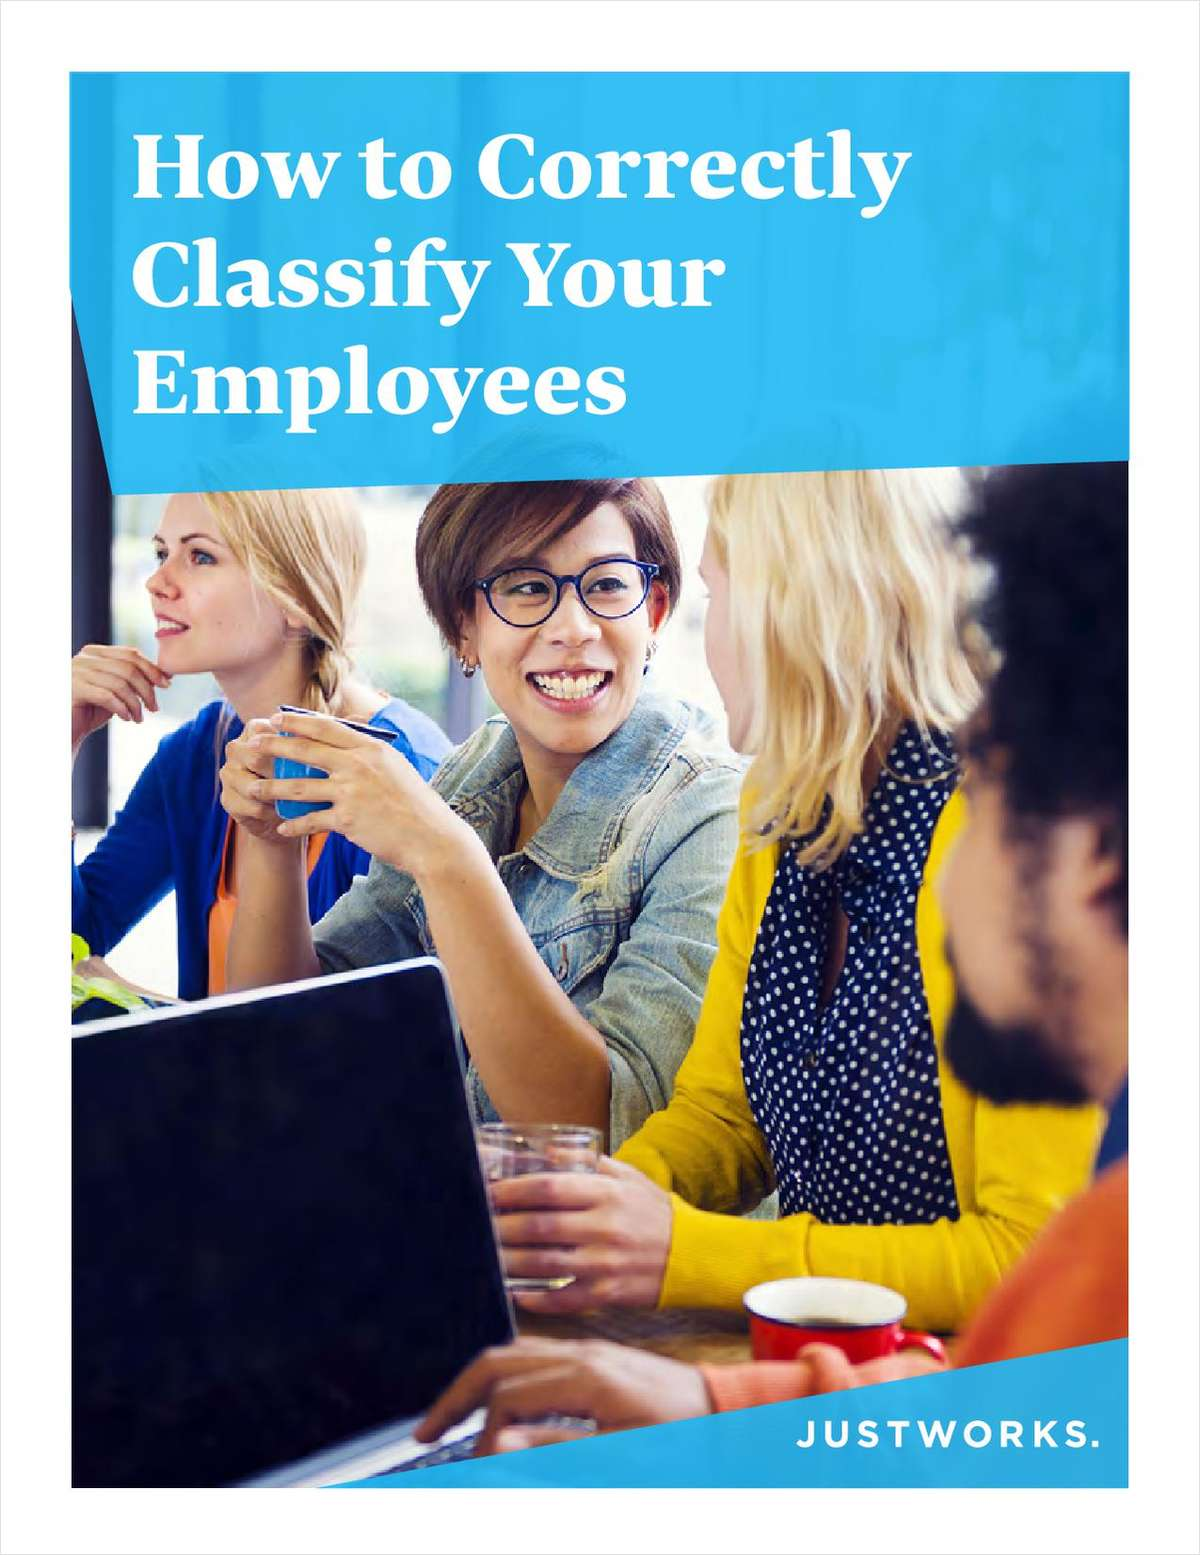 How to Correctly Classify Your Employees